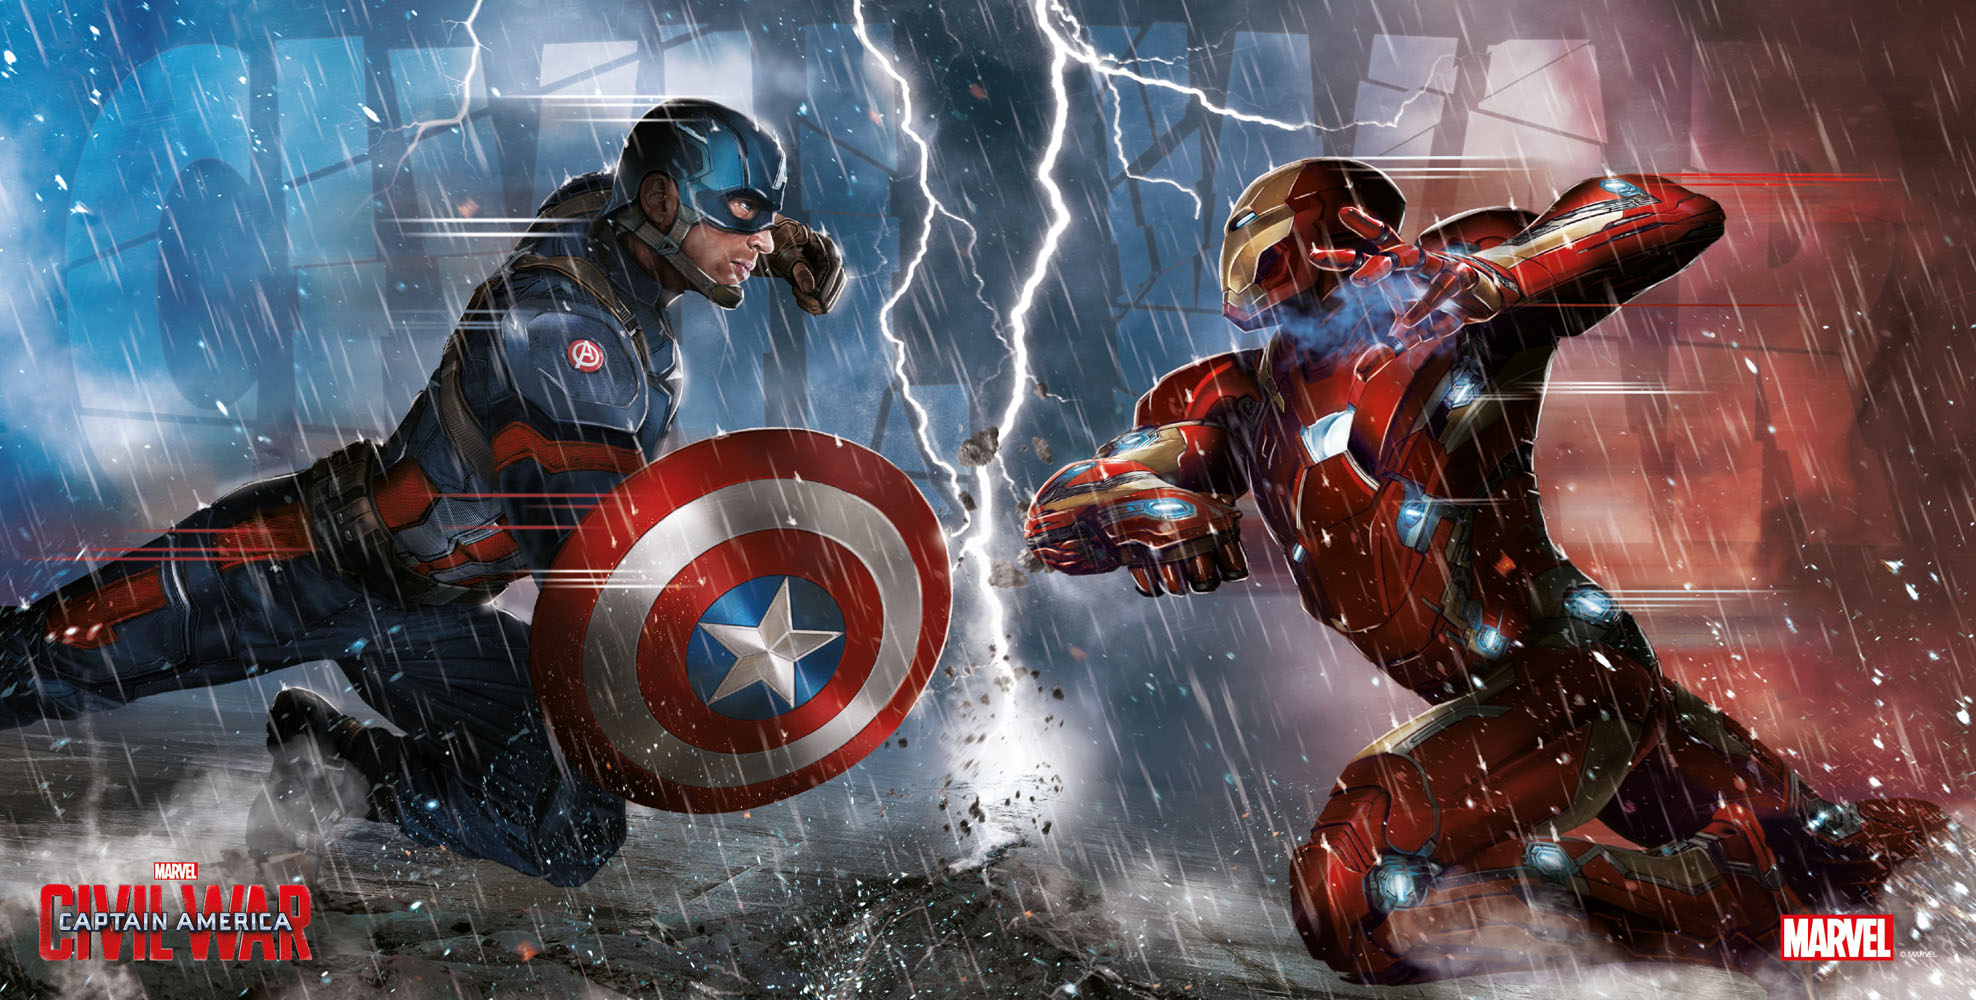 Photo du produit CAPTAIN AMERICA CIVIL WAR POSTER EN VERRE DUEL